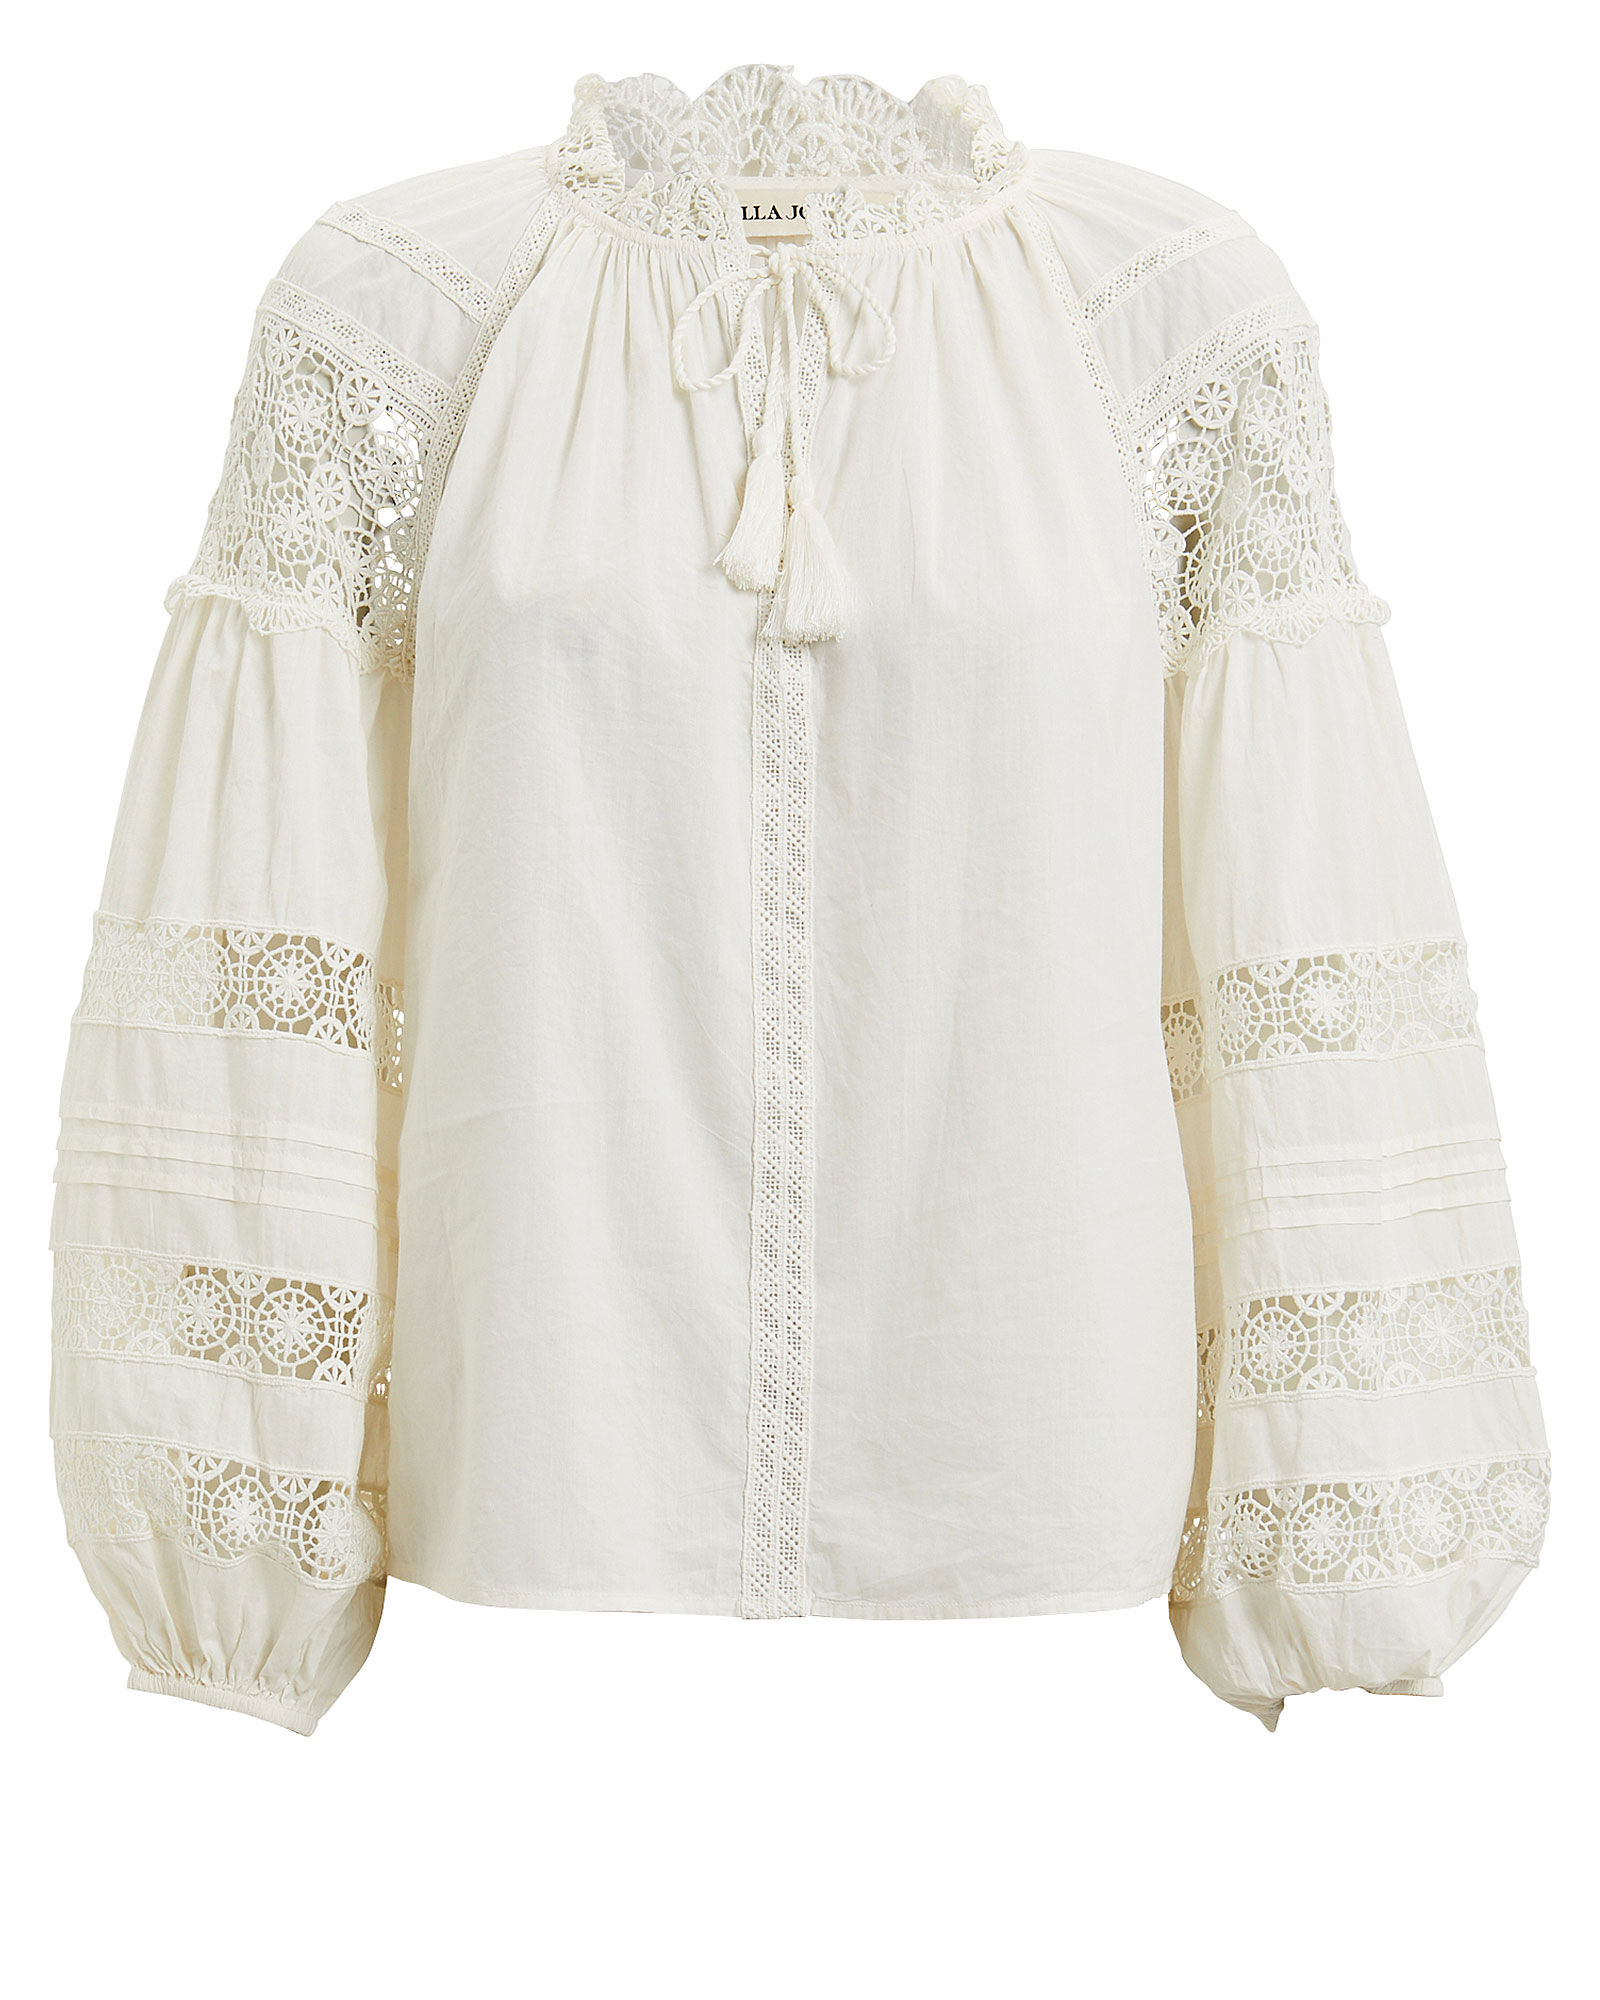 Gemma Cotton Voile Blouse, ALABASTER, hi-res